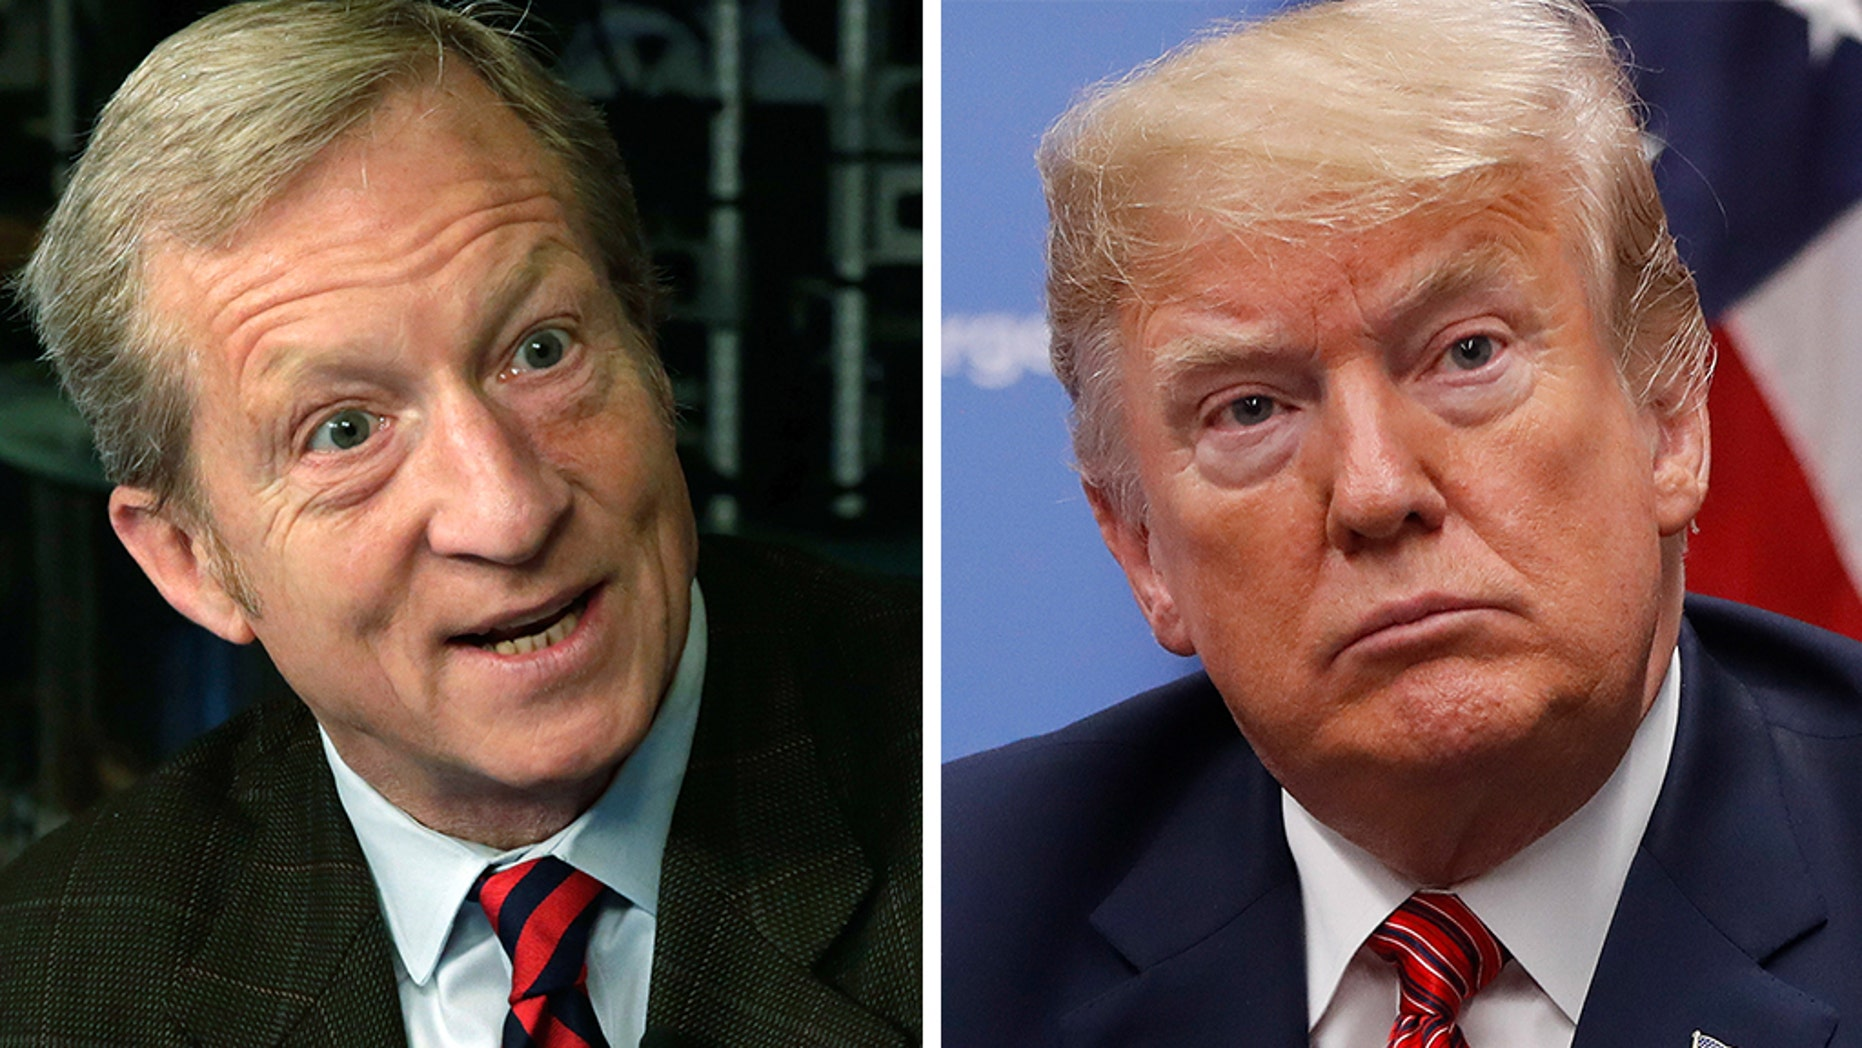 Liberalmega-donor Tom Steyer quickly moved Tuesday's conversation to impeachment, something he has supported via his organization Need to Impeach